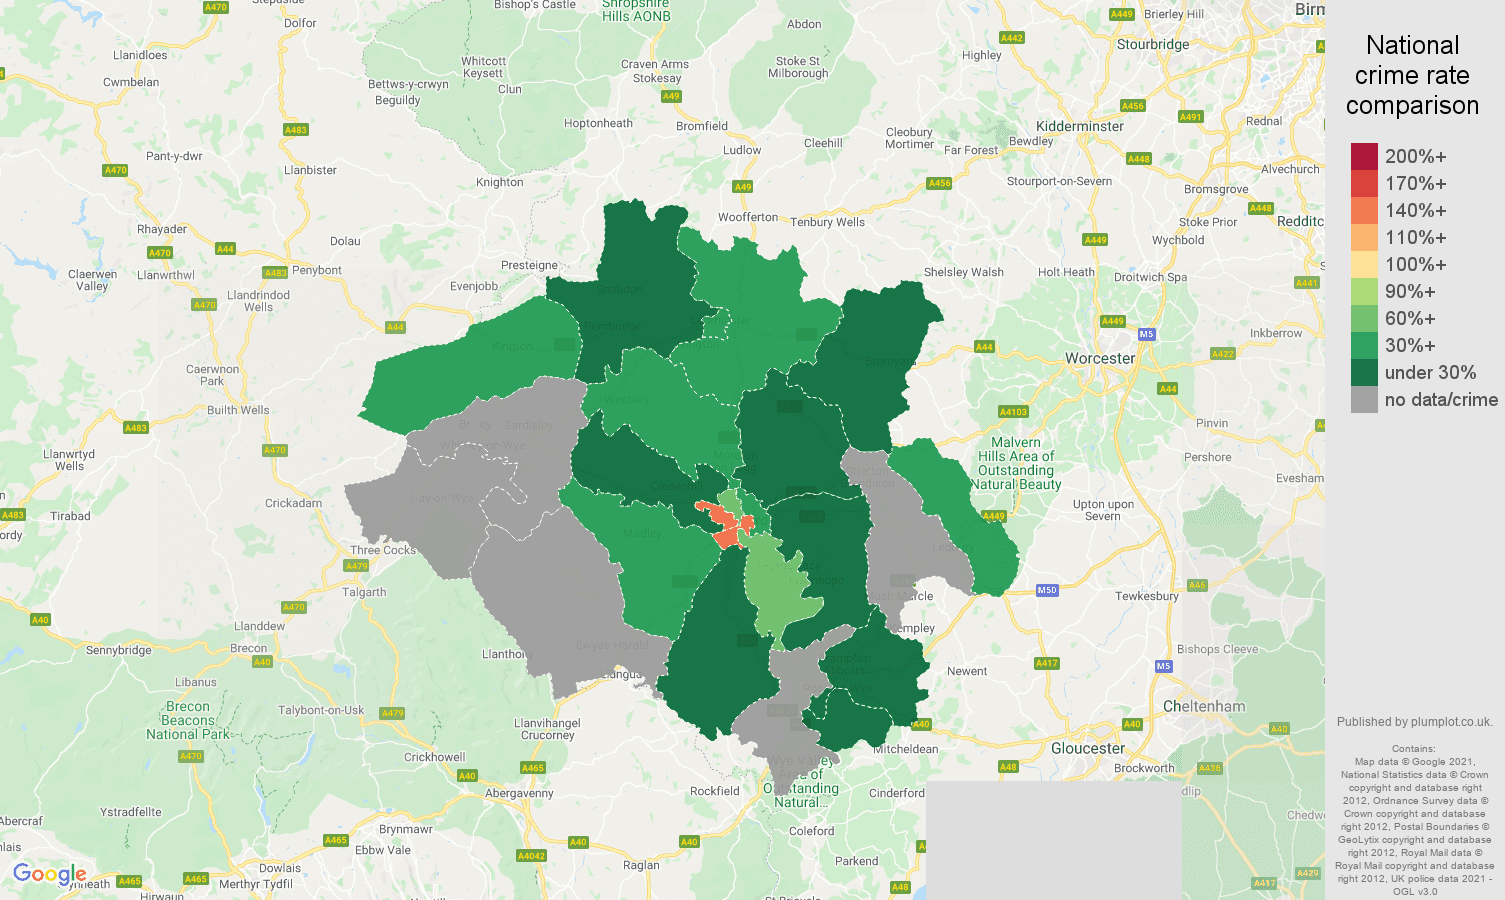 Hereford bicycle theft crime rate comparison map